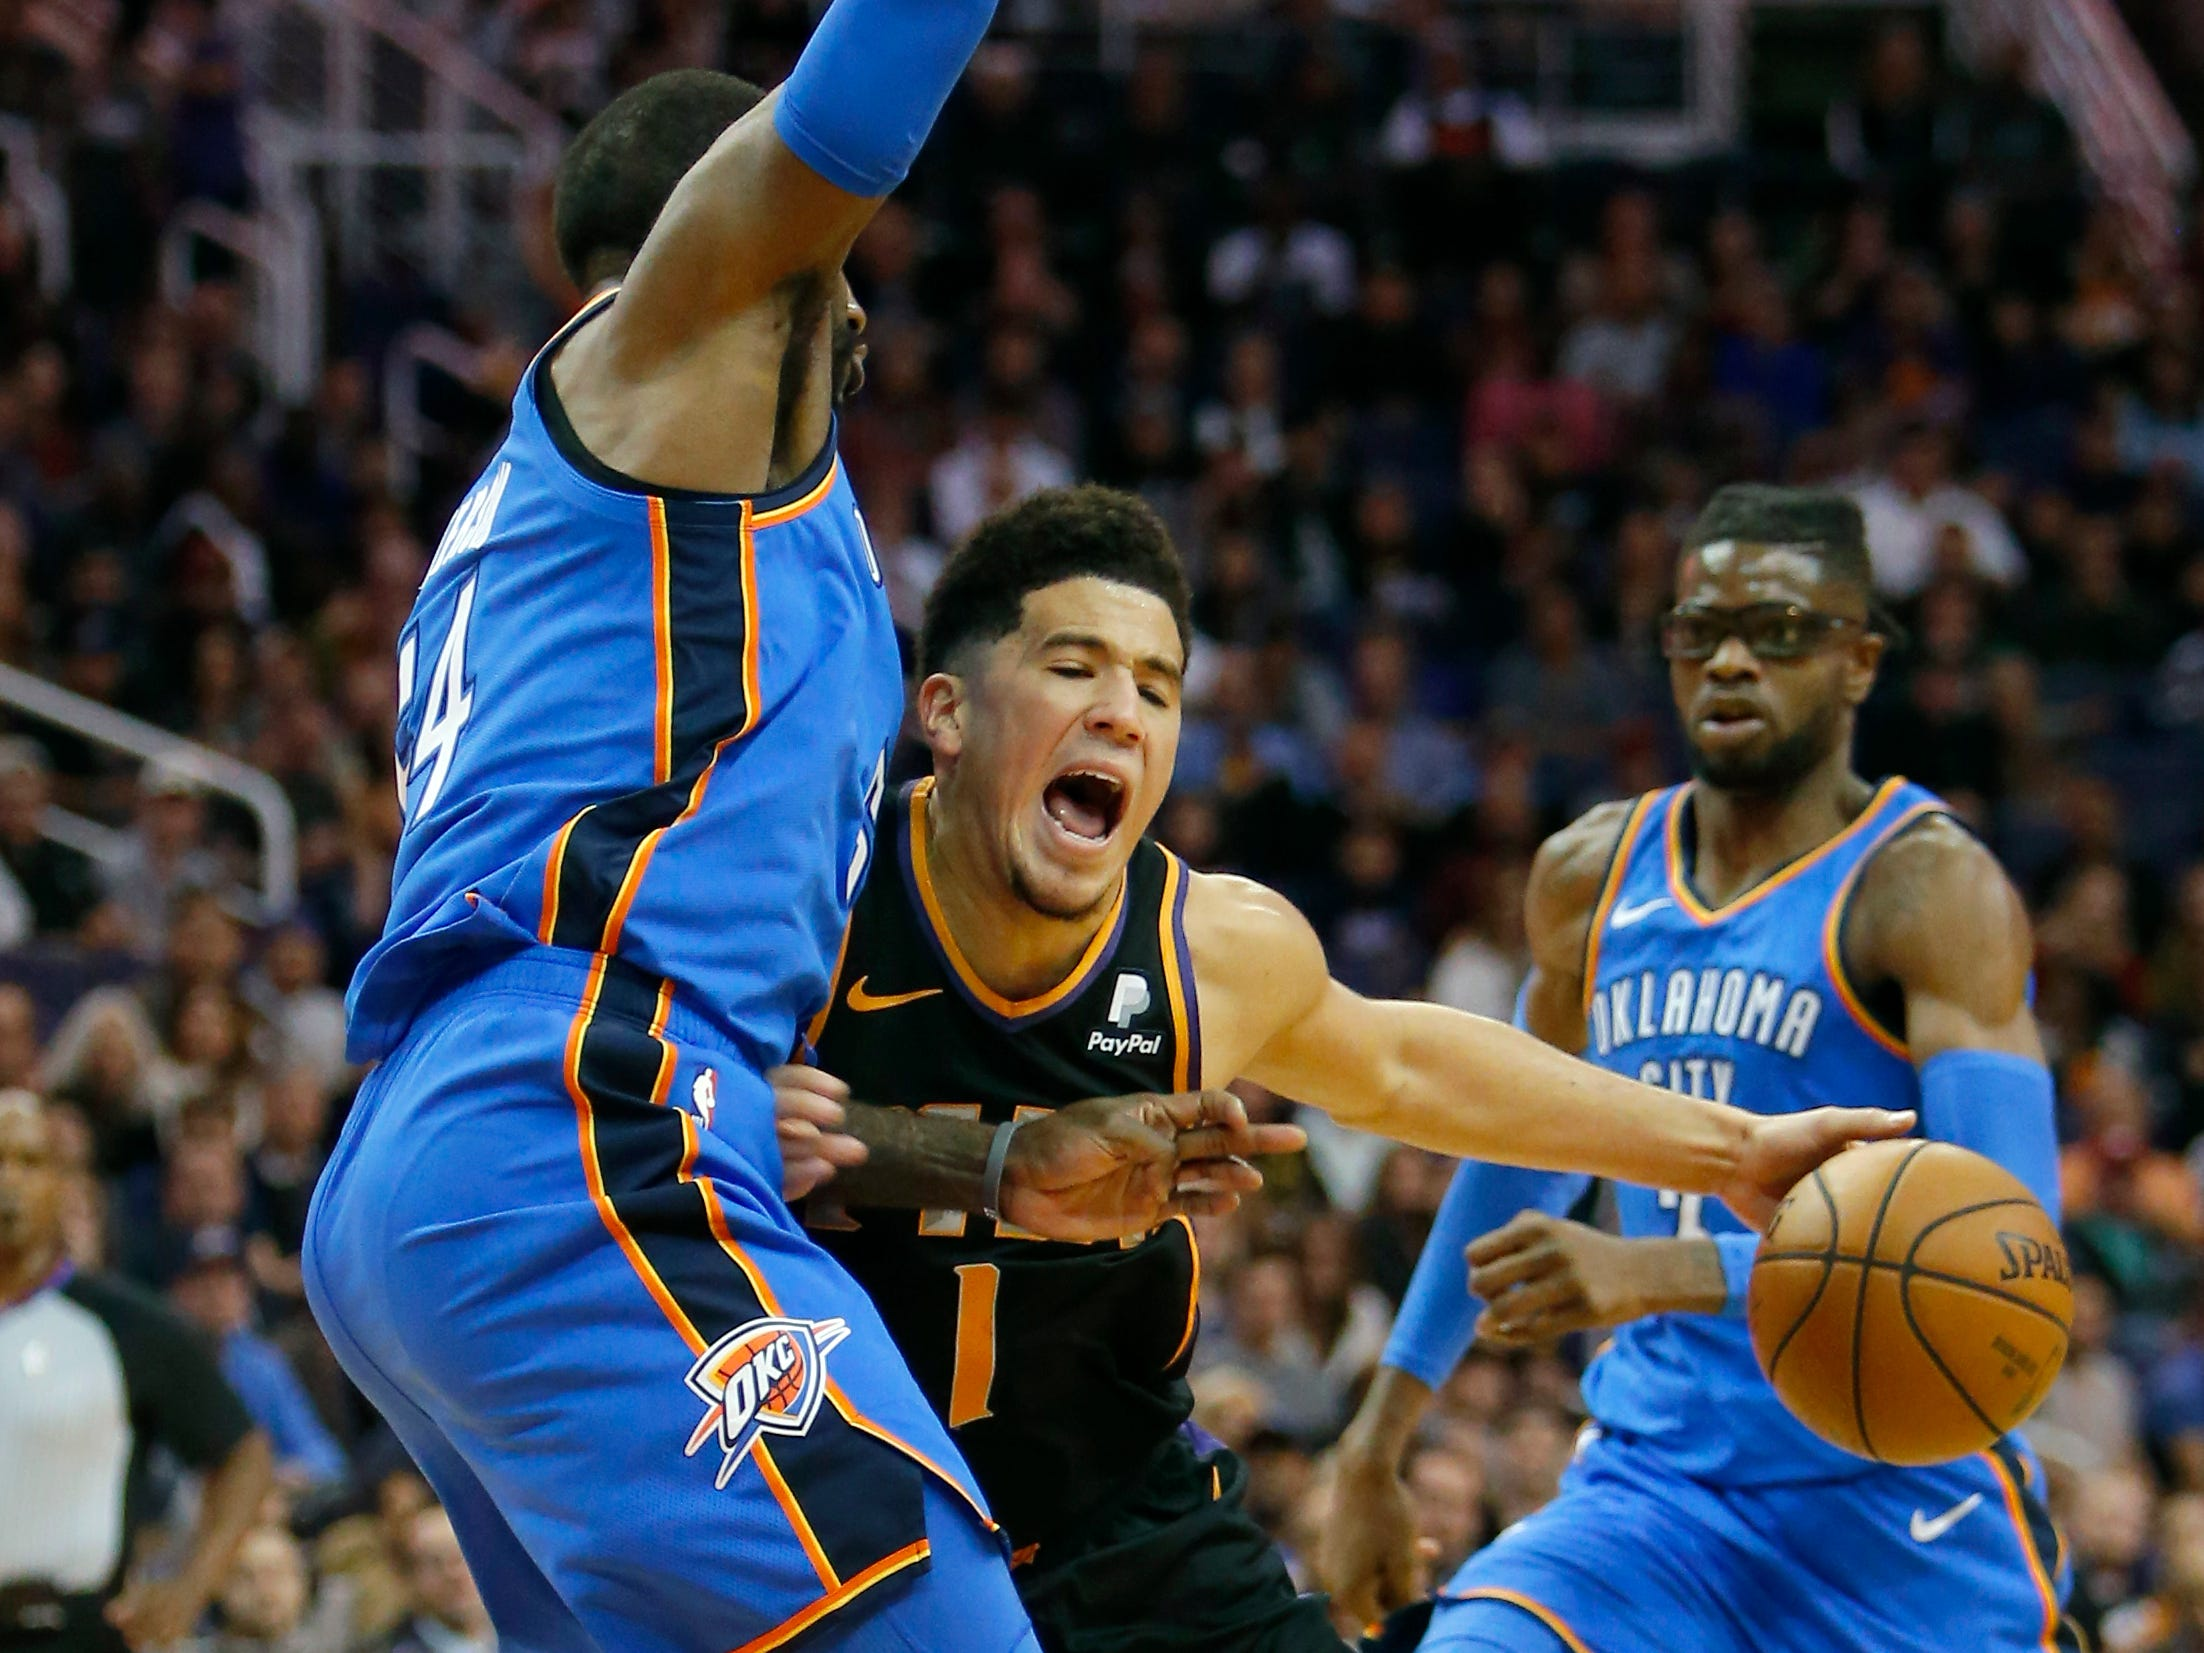 Phoenix Suns guard Devin Booker (1) drives on Oklahoma City Thunder forward Patrick Patterson during the first half of an NBA basketball game Saturday, Nov. 17, 2018, in Phoenix. (AP Photo/Rick Scuteri)